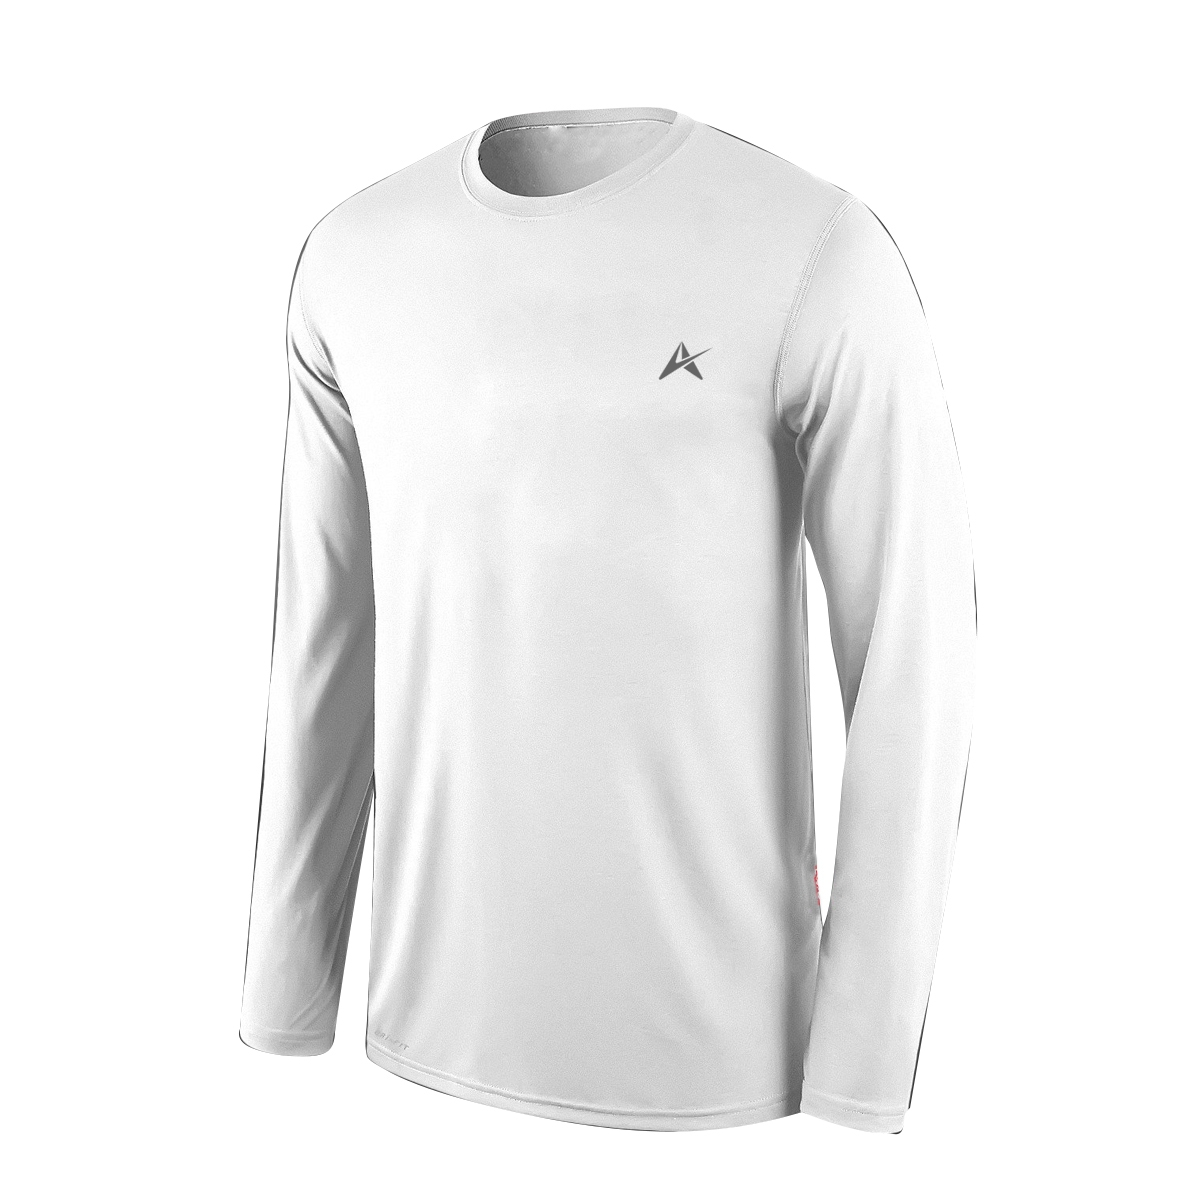 Men's Comfort Soft Long Sleeve T-Shirt AI-010